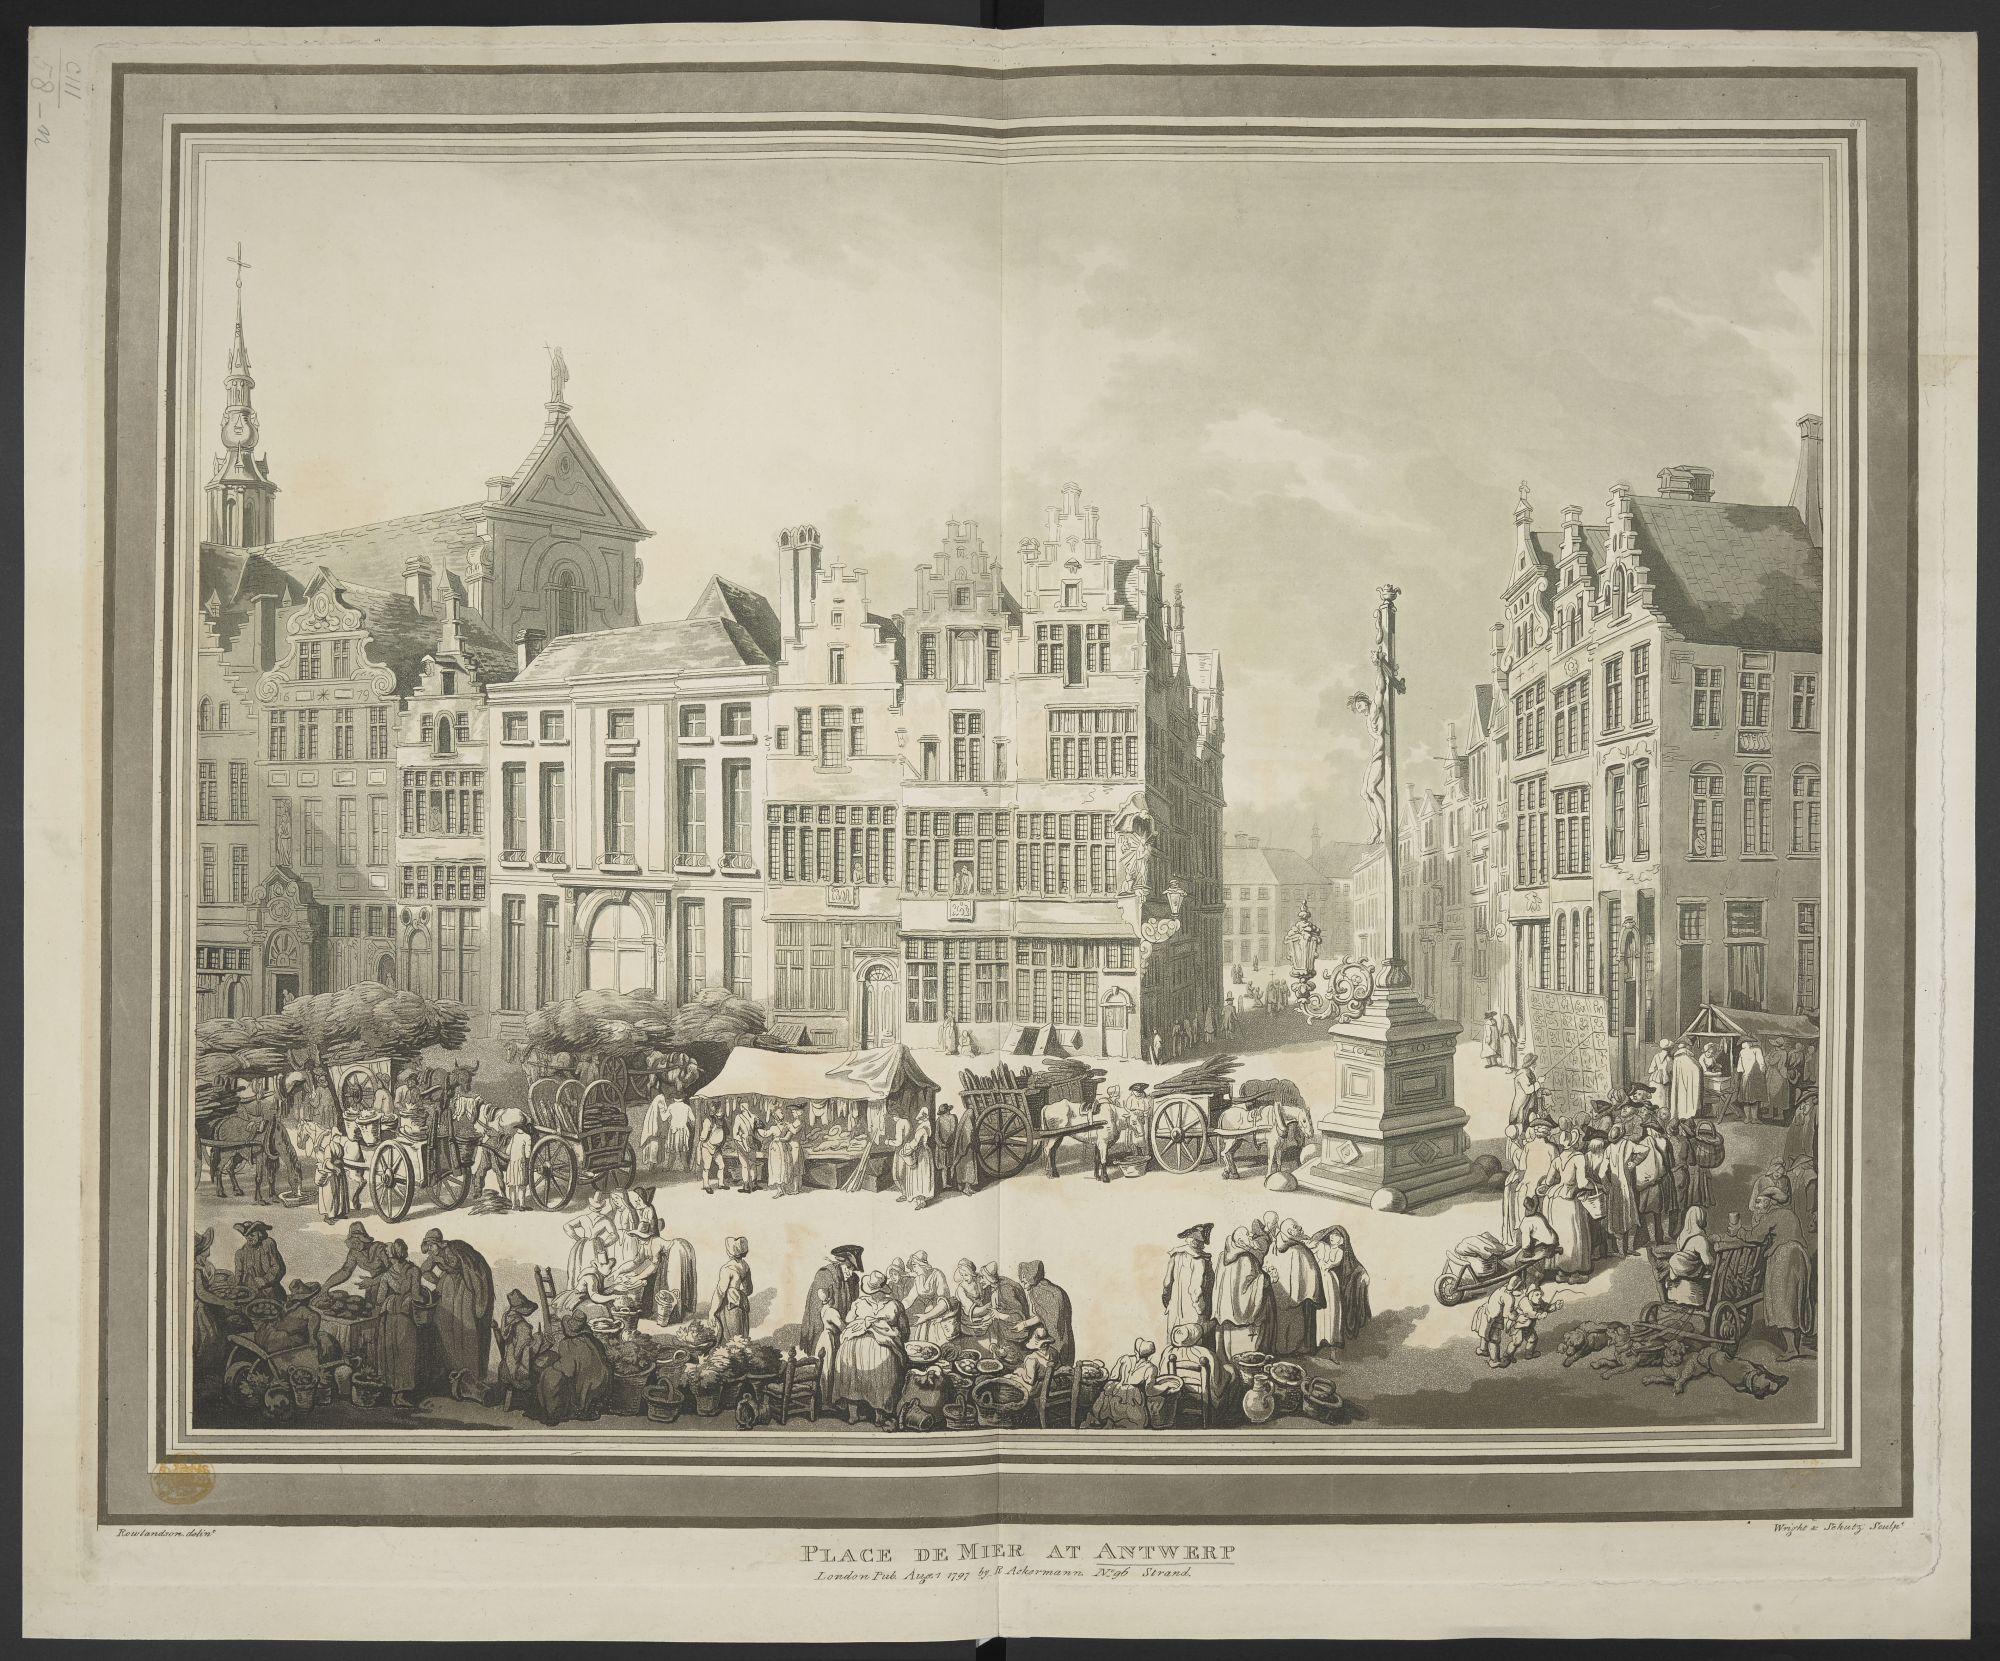 A view of the Place de Mier in Antwerp